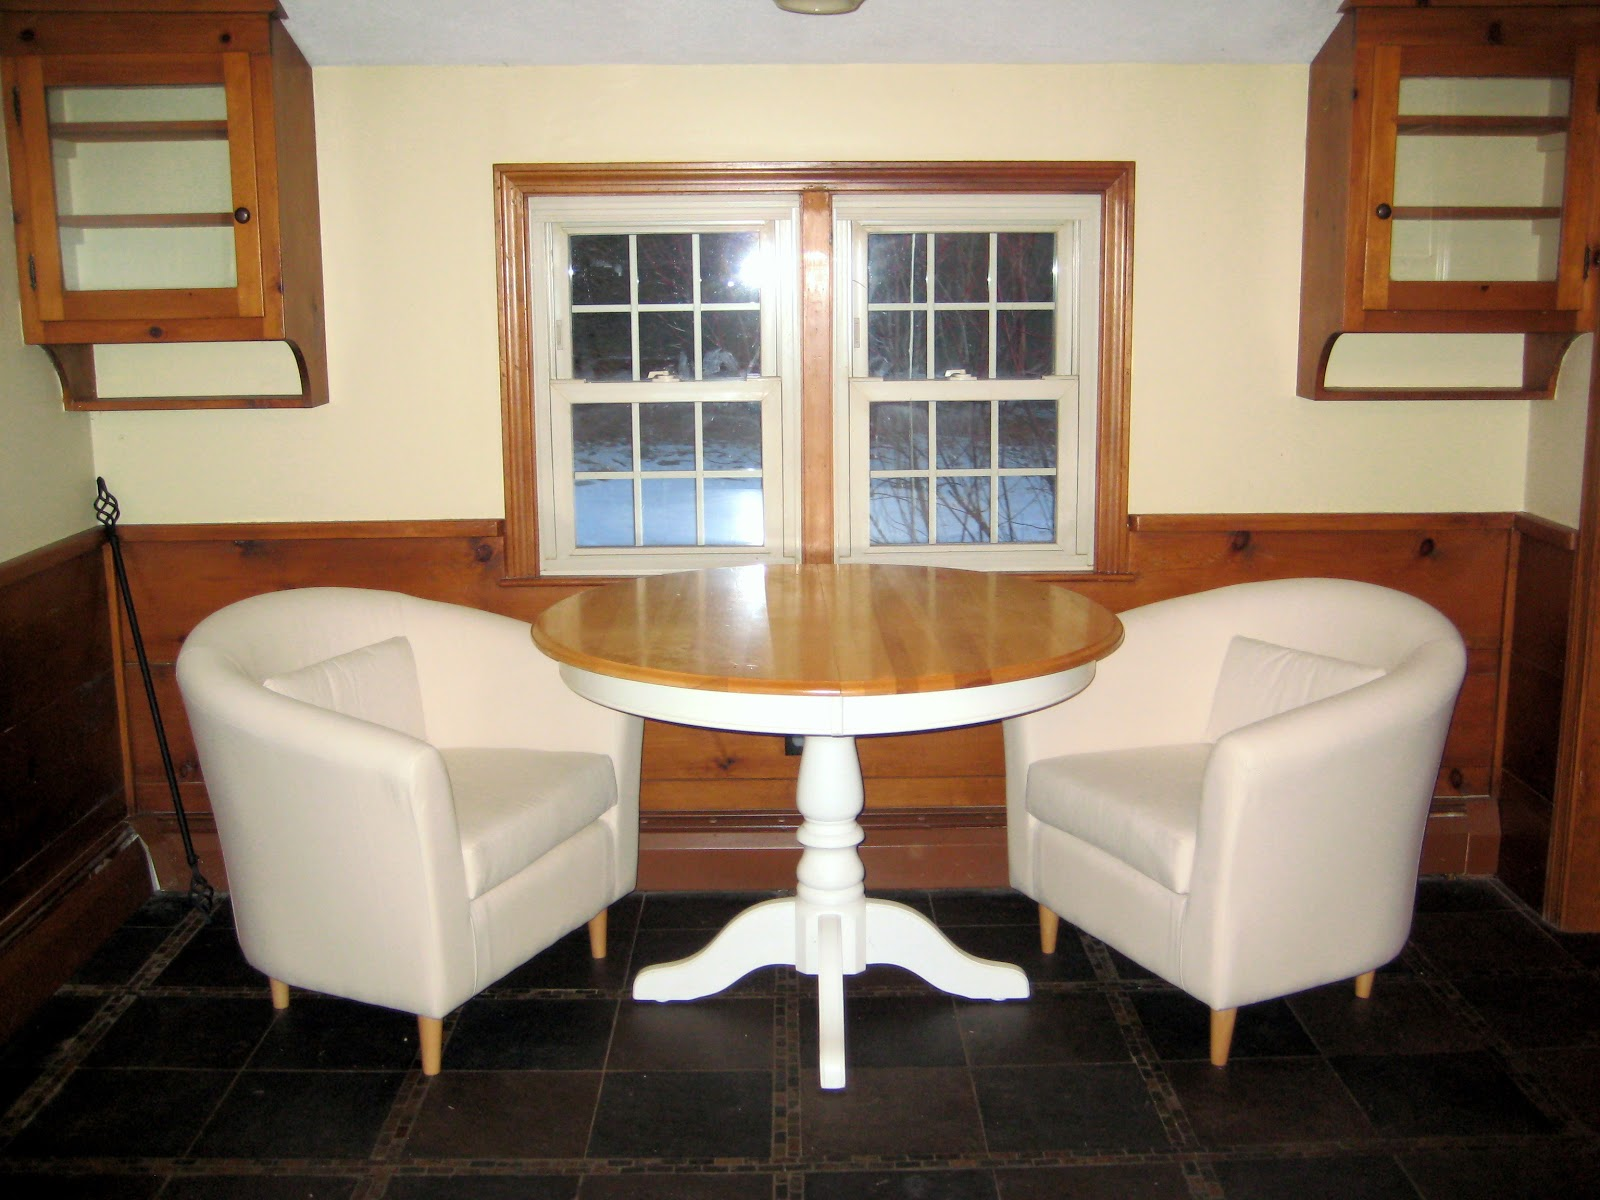 Craigslist Dining Set Do Over X 2 & Happily Barefoot: Craigslist Dining Set Do Over X 2